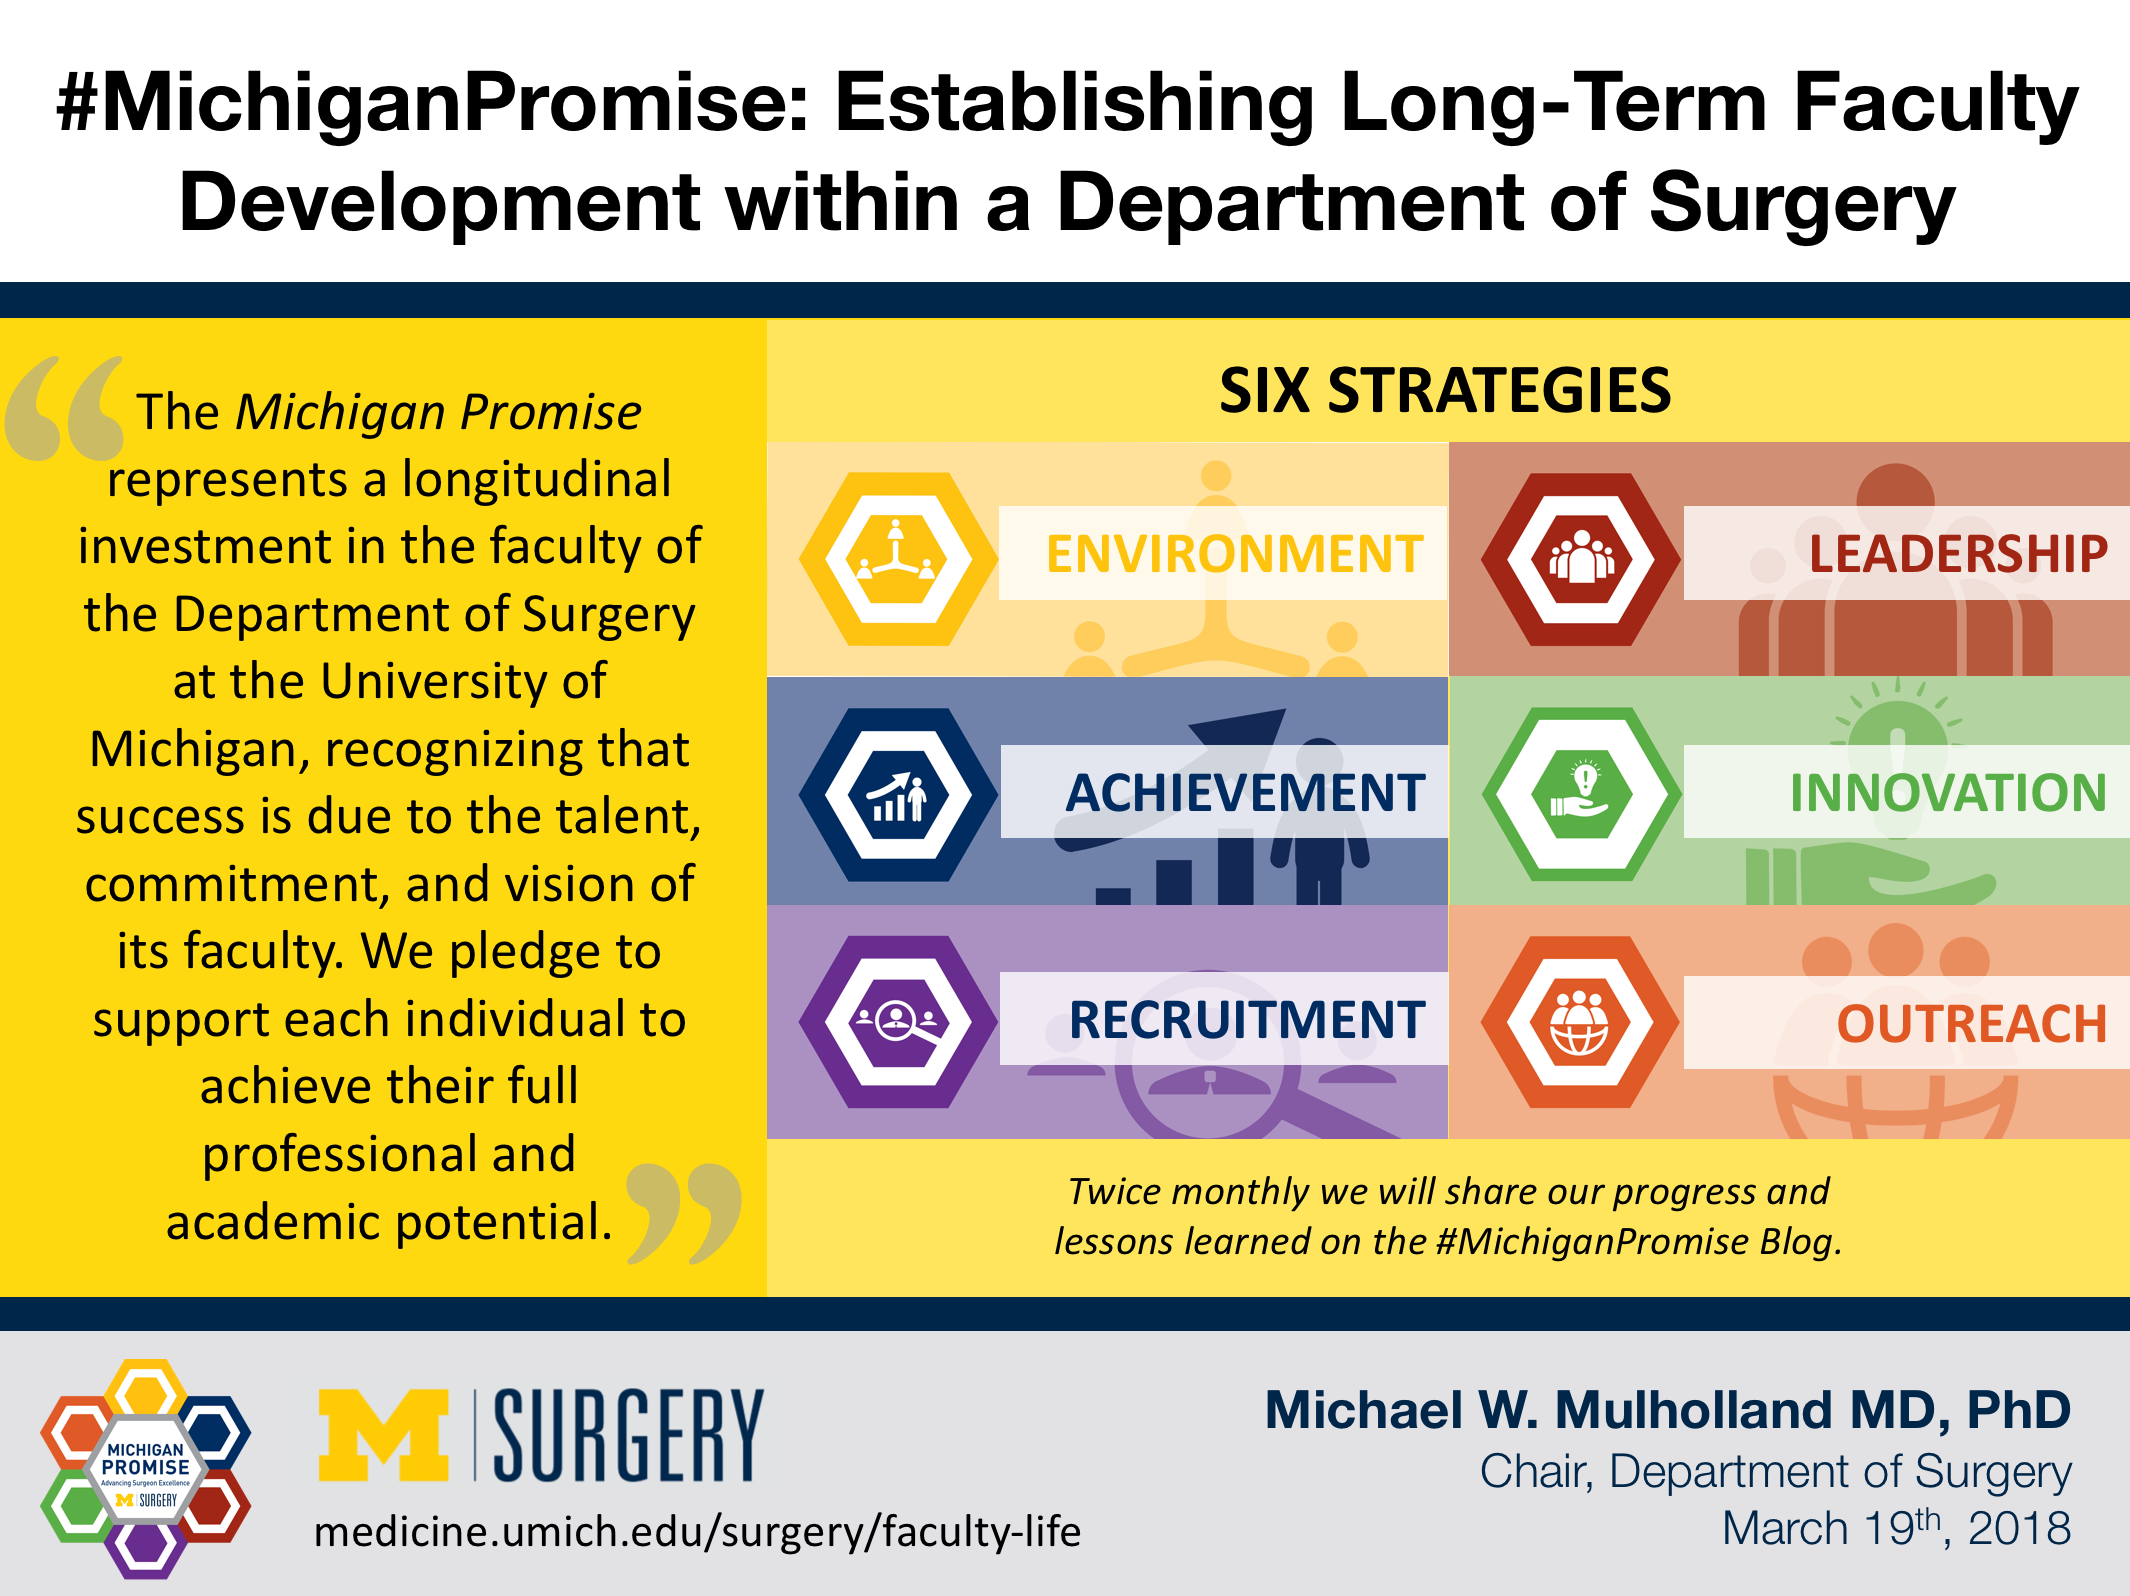 Twice monthly we will share our progress and lessons learned on the #MichiganPromise blog.